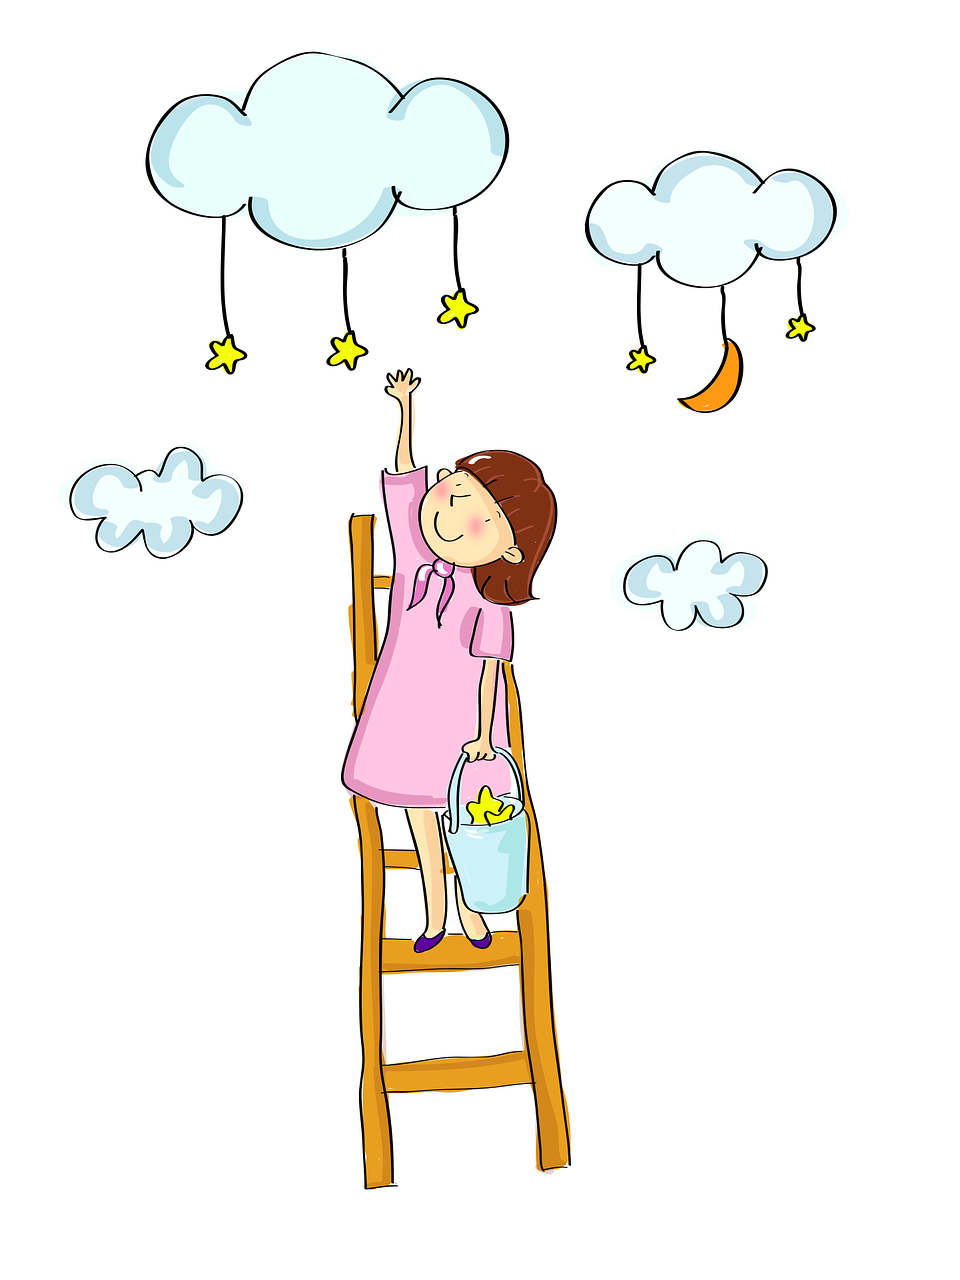 Cartoon girl up ladder, reaching for stars